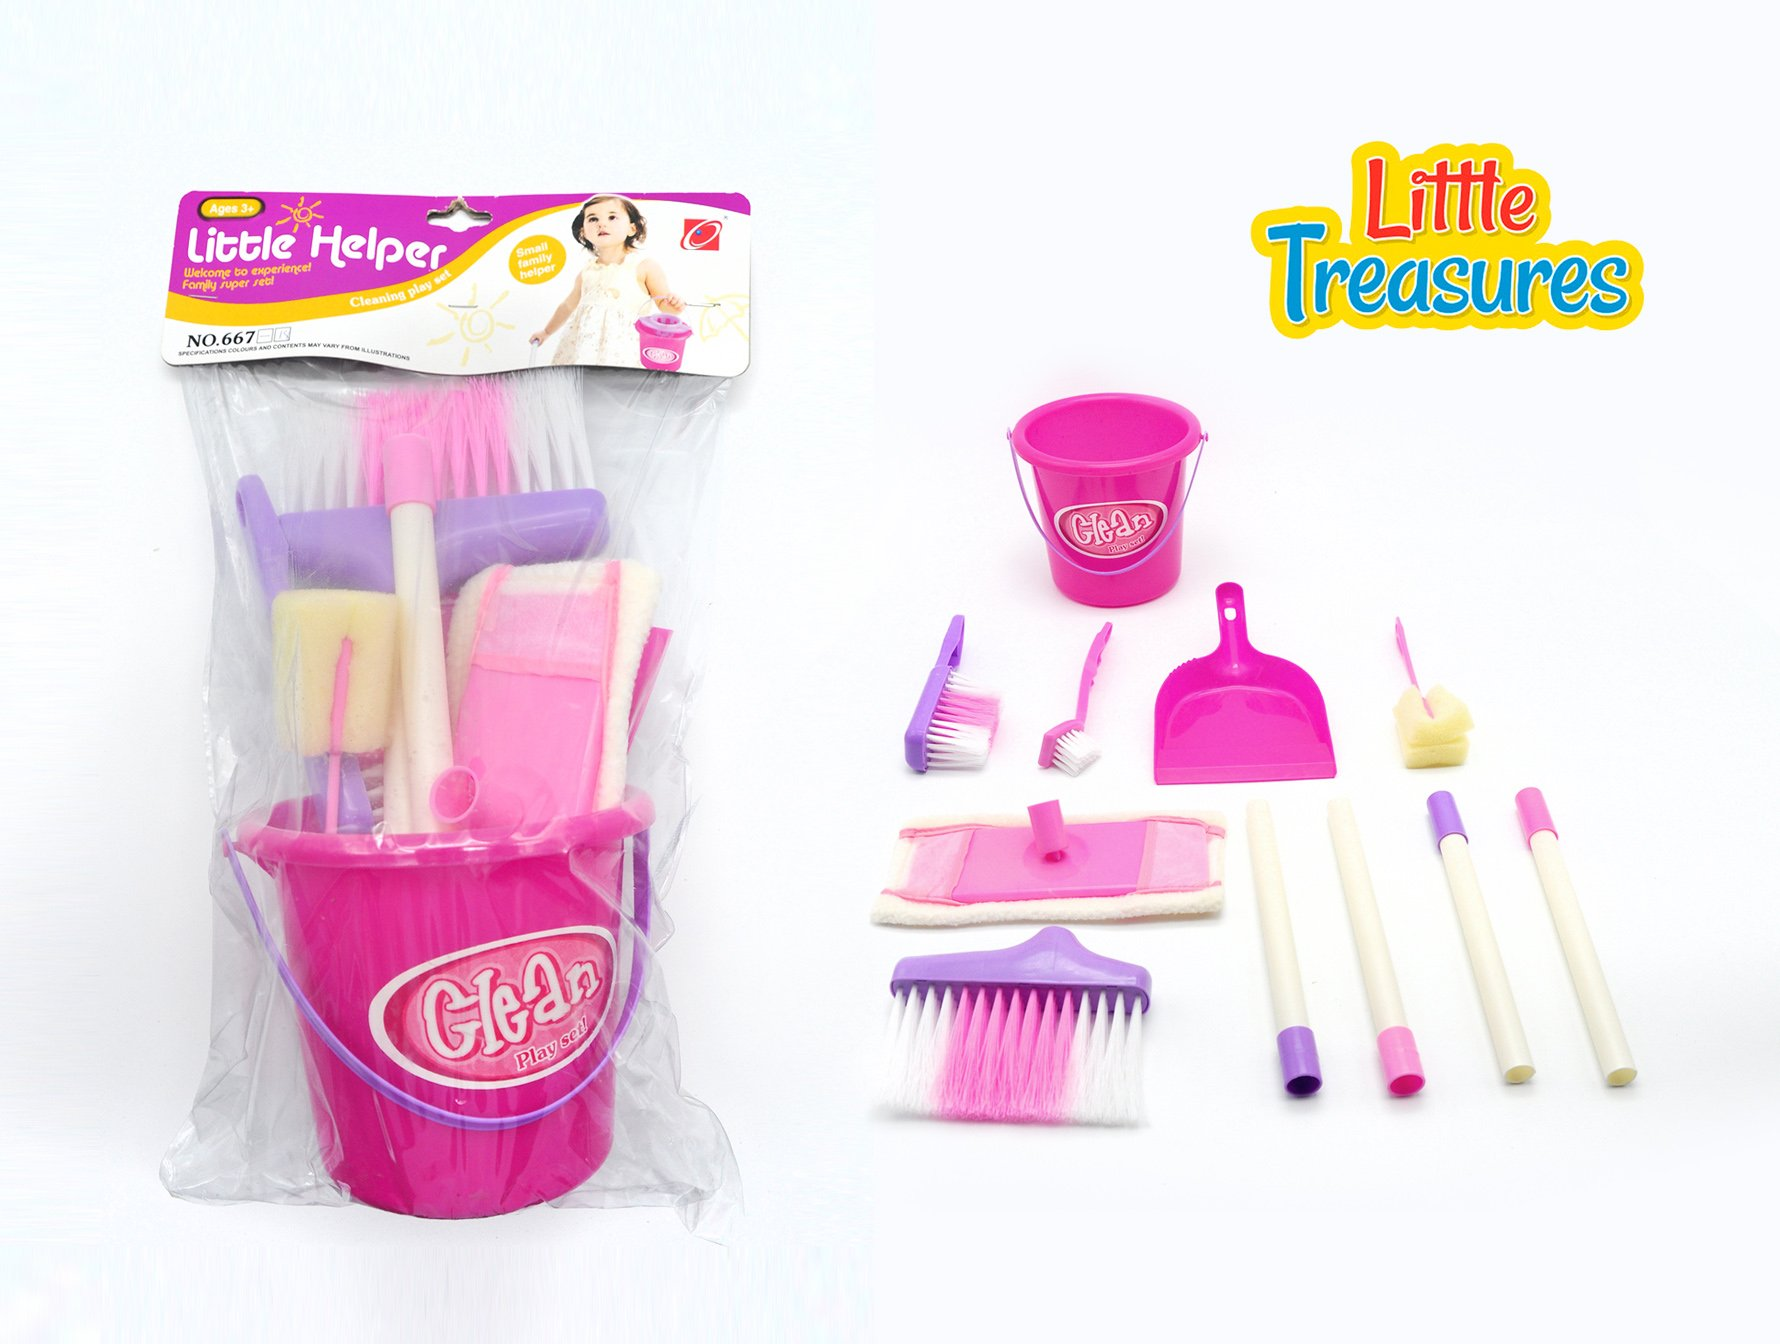 Little Treasures Little Helper 8 Piece Pretend and Play Cleaning Play Set with Bucket, Broom, Floor mop, Dustpan and Brush, Sponge and Dish Brush by Little Treasures